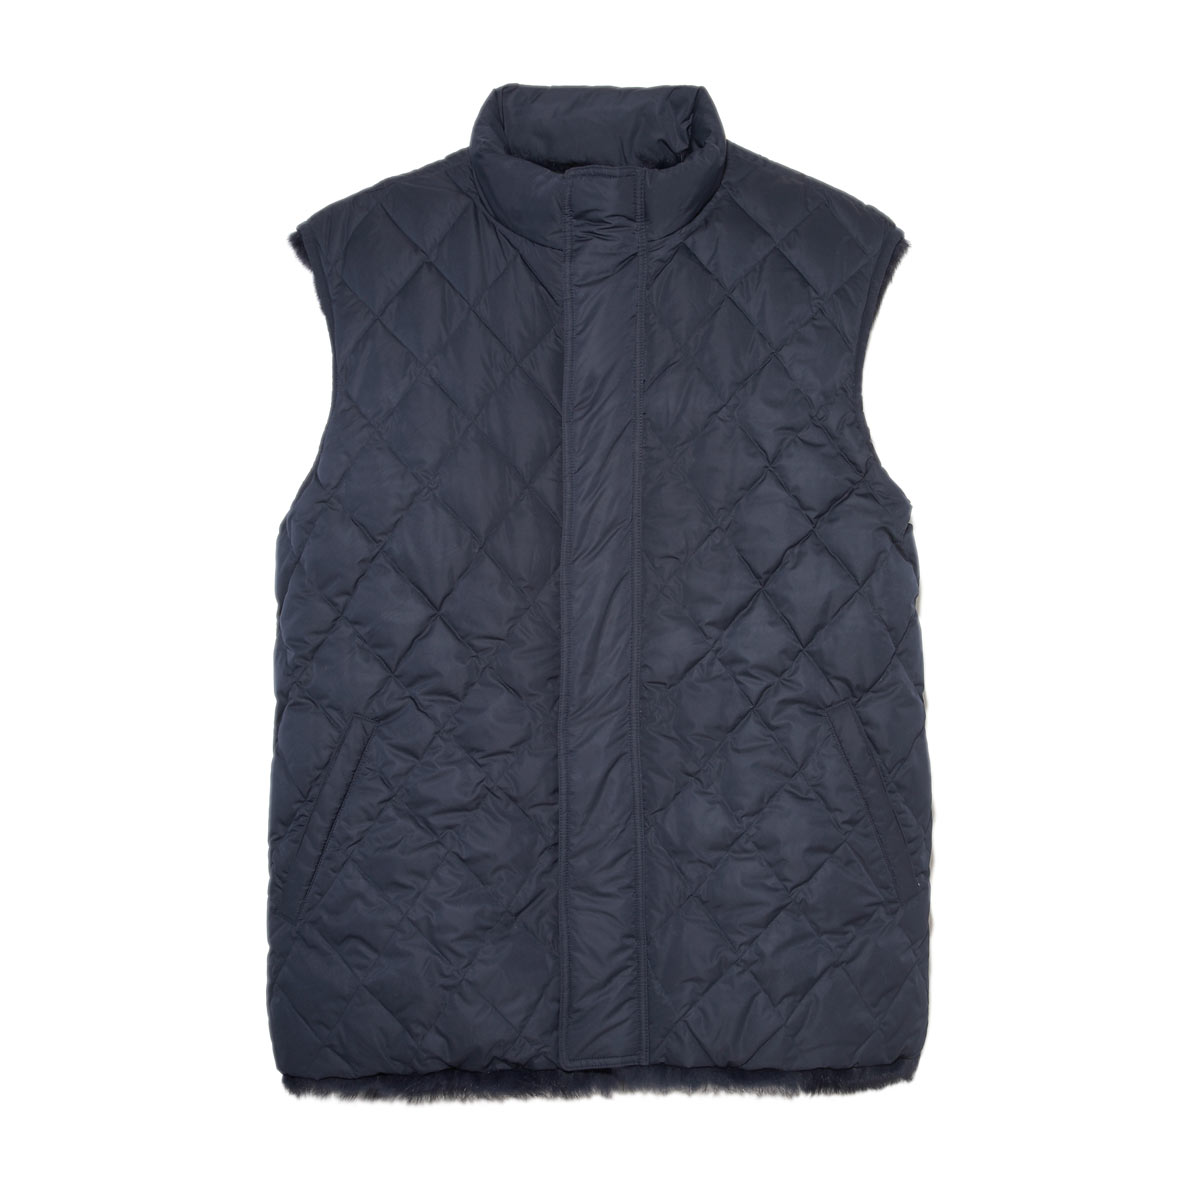 Mens Sheared Mink Lined Puffer Vest in Navy